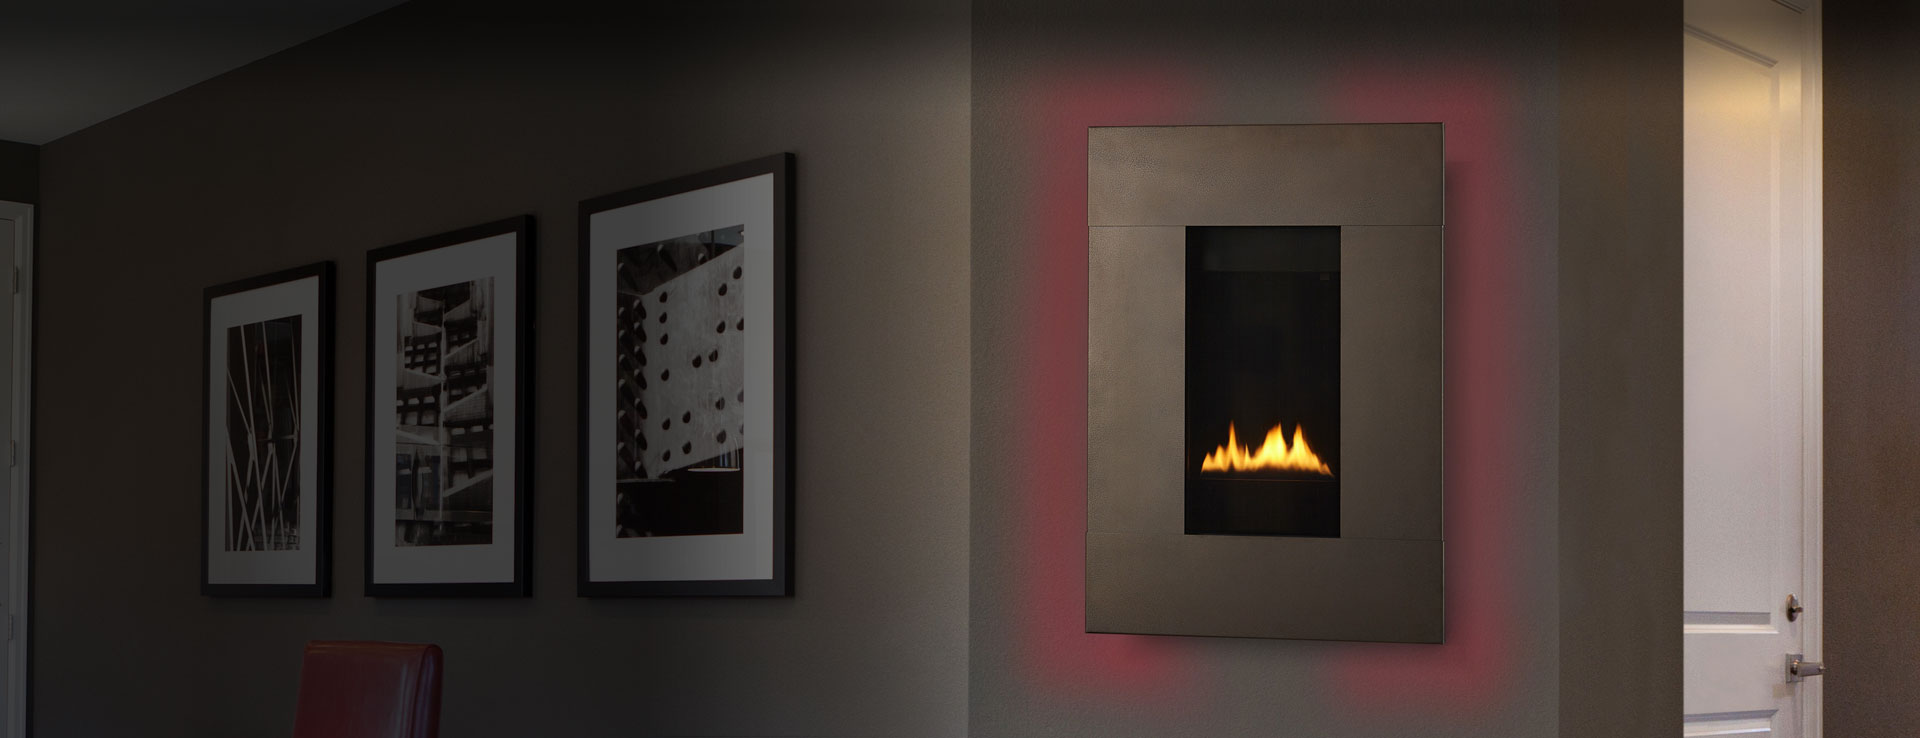 hight resolution of hd wallpapers majestic vermont castings gas fireplace manuals cobra